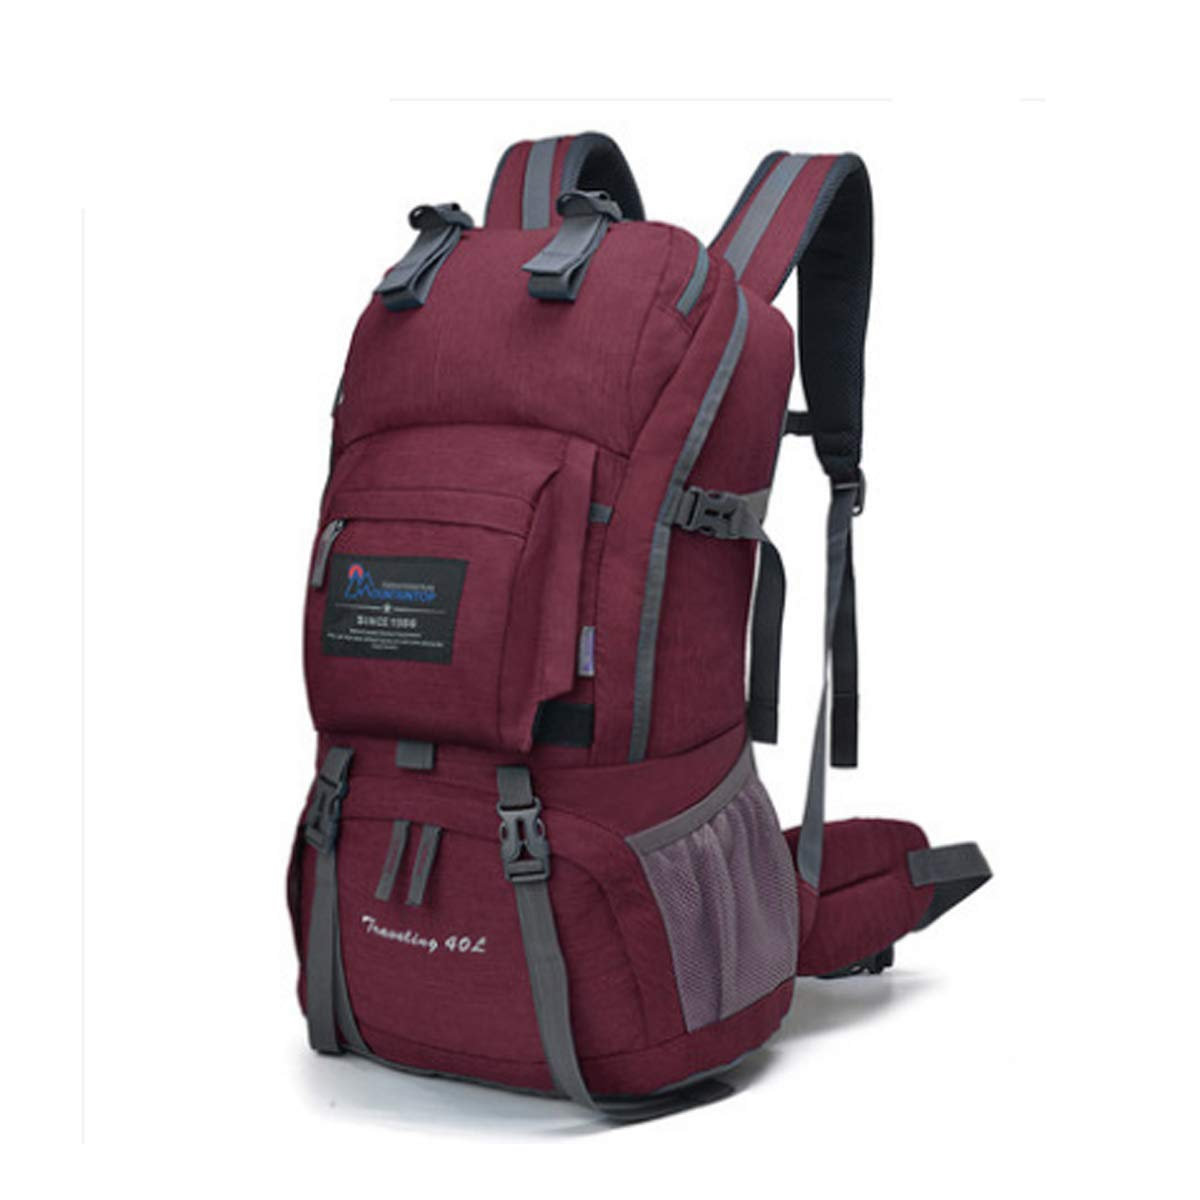 Haoyushangmao Canvas Travel Outdoor Camping Backpack with Rain Cover-40L Latest Models Color : Fuchsia, Size : 40L